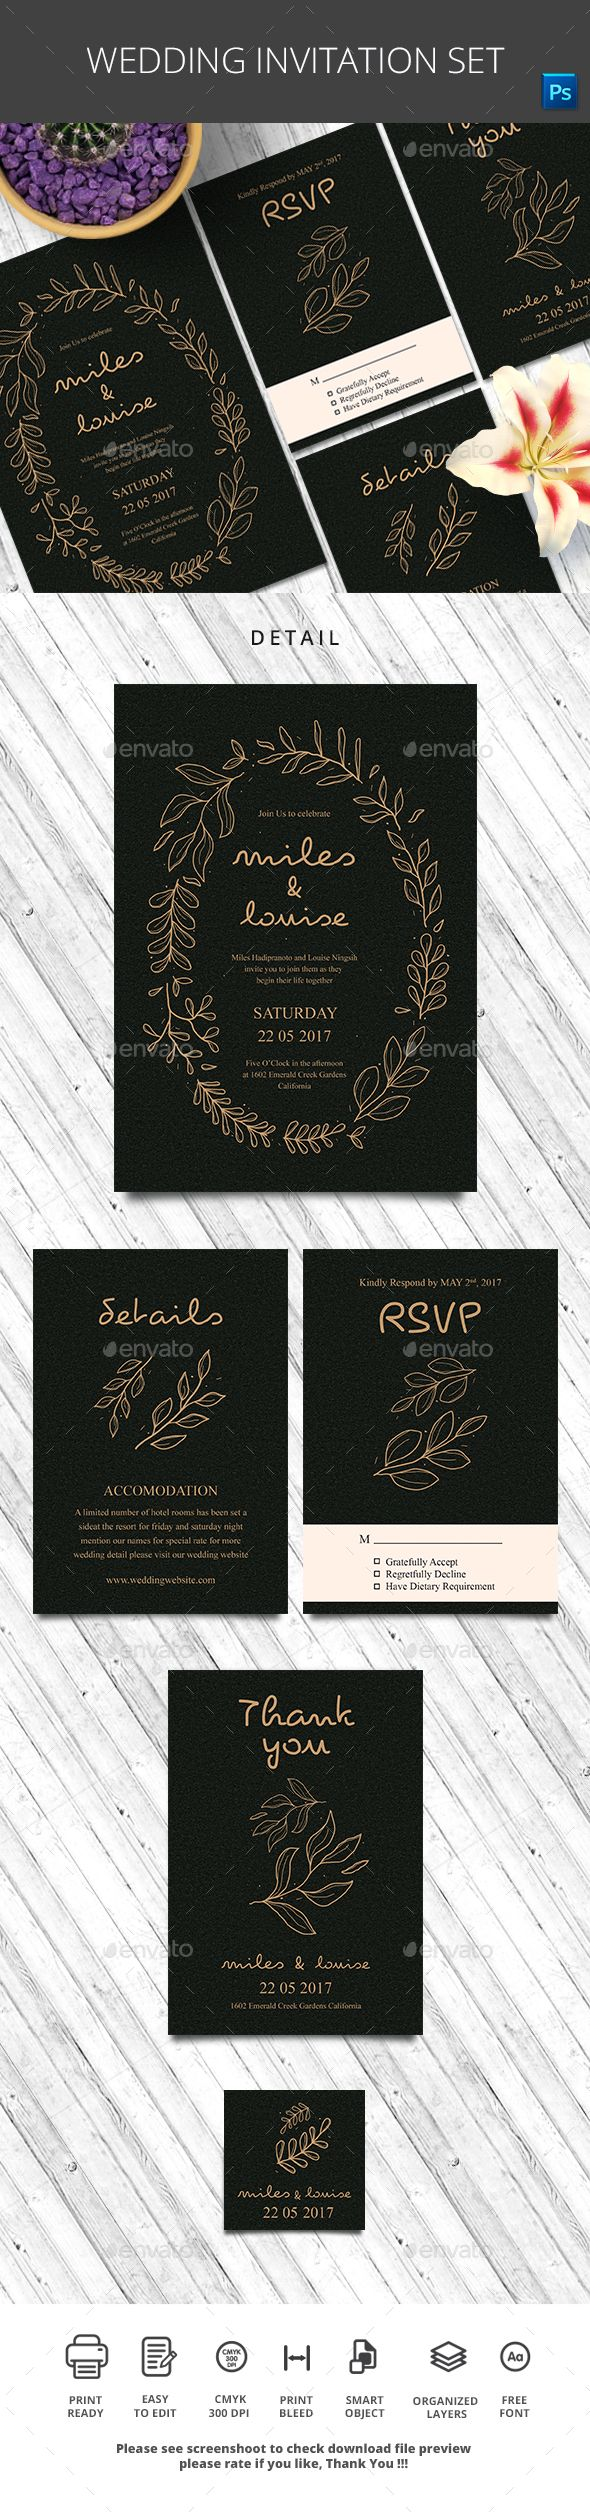 free online printable wedding thank you cards%0A  Wedding Invitation Set  Wedding Greeting Cards Download here   https   graphicriver